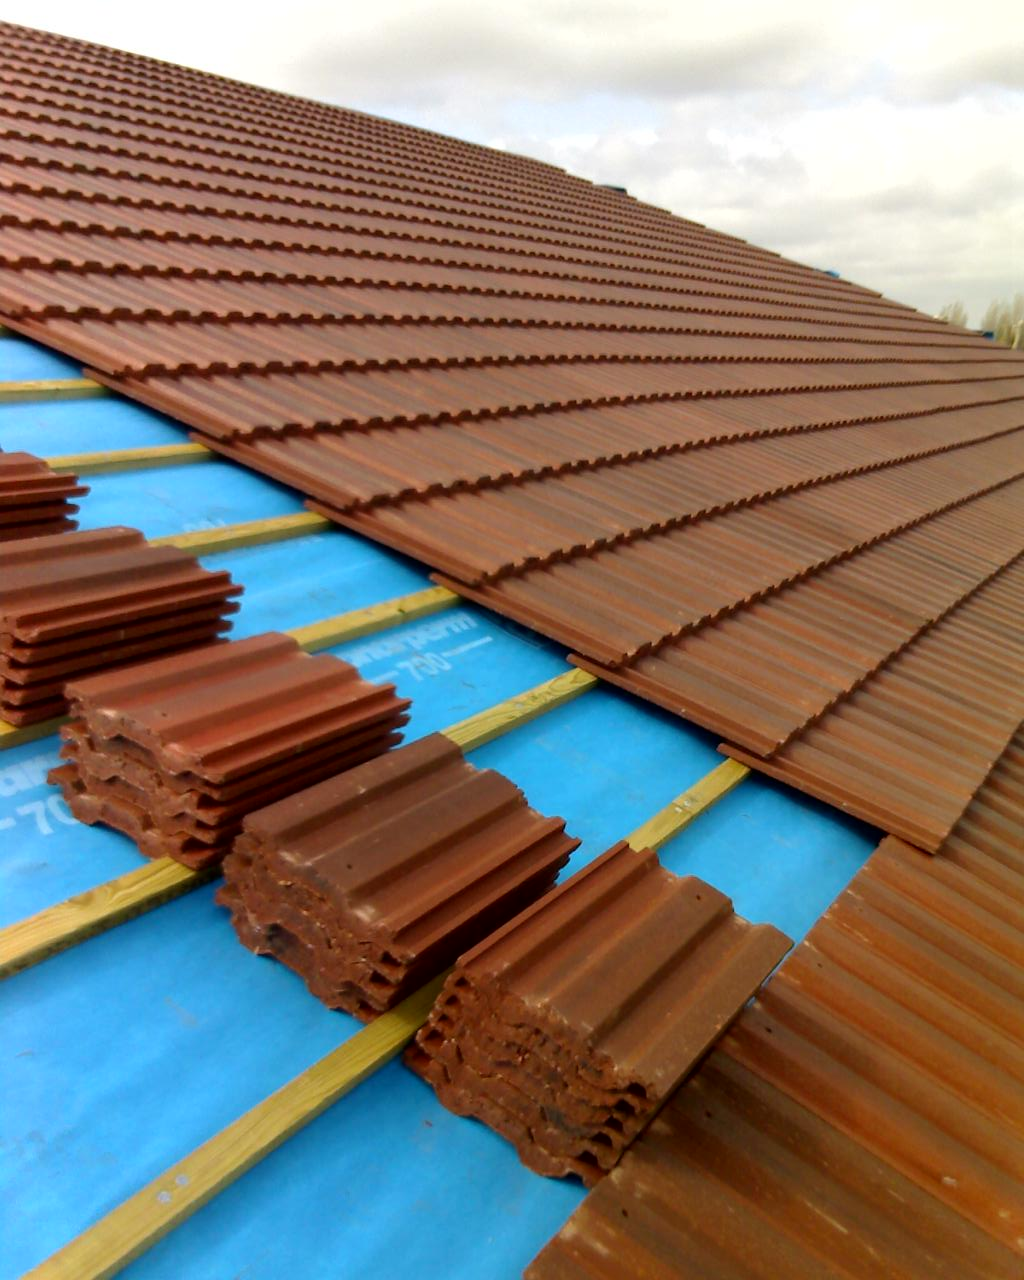 San Diego Roofing - Tile Roofing